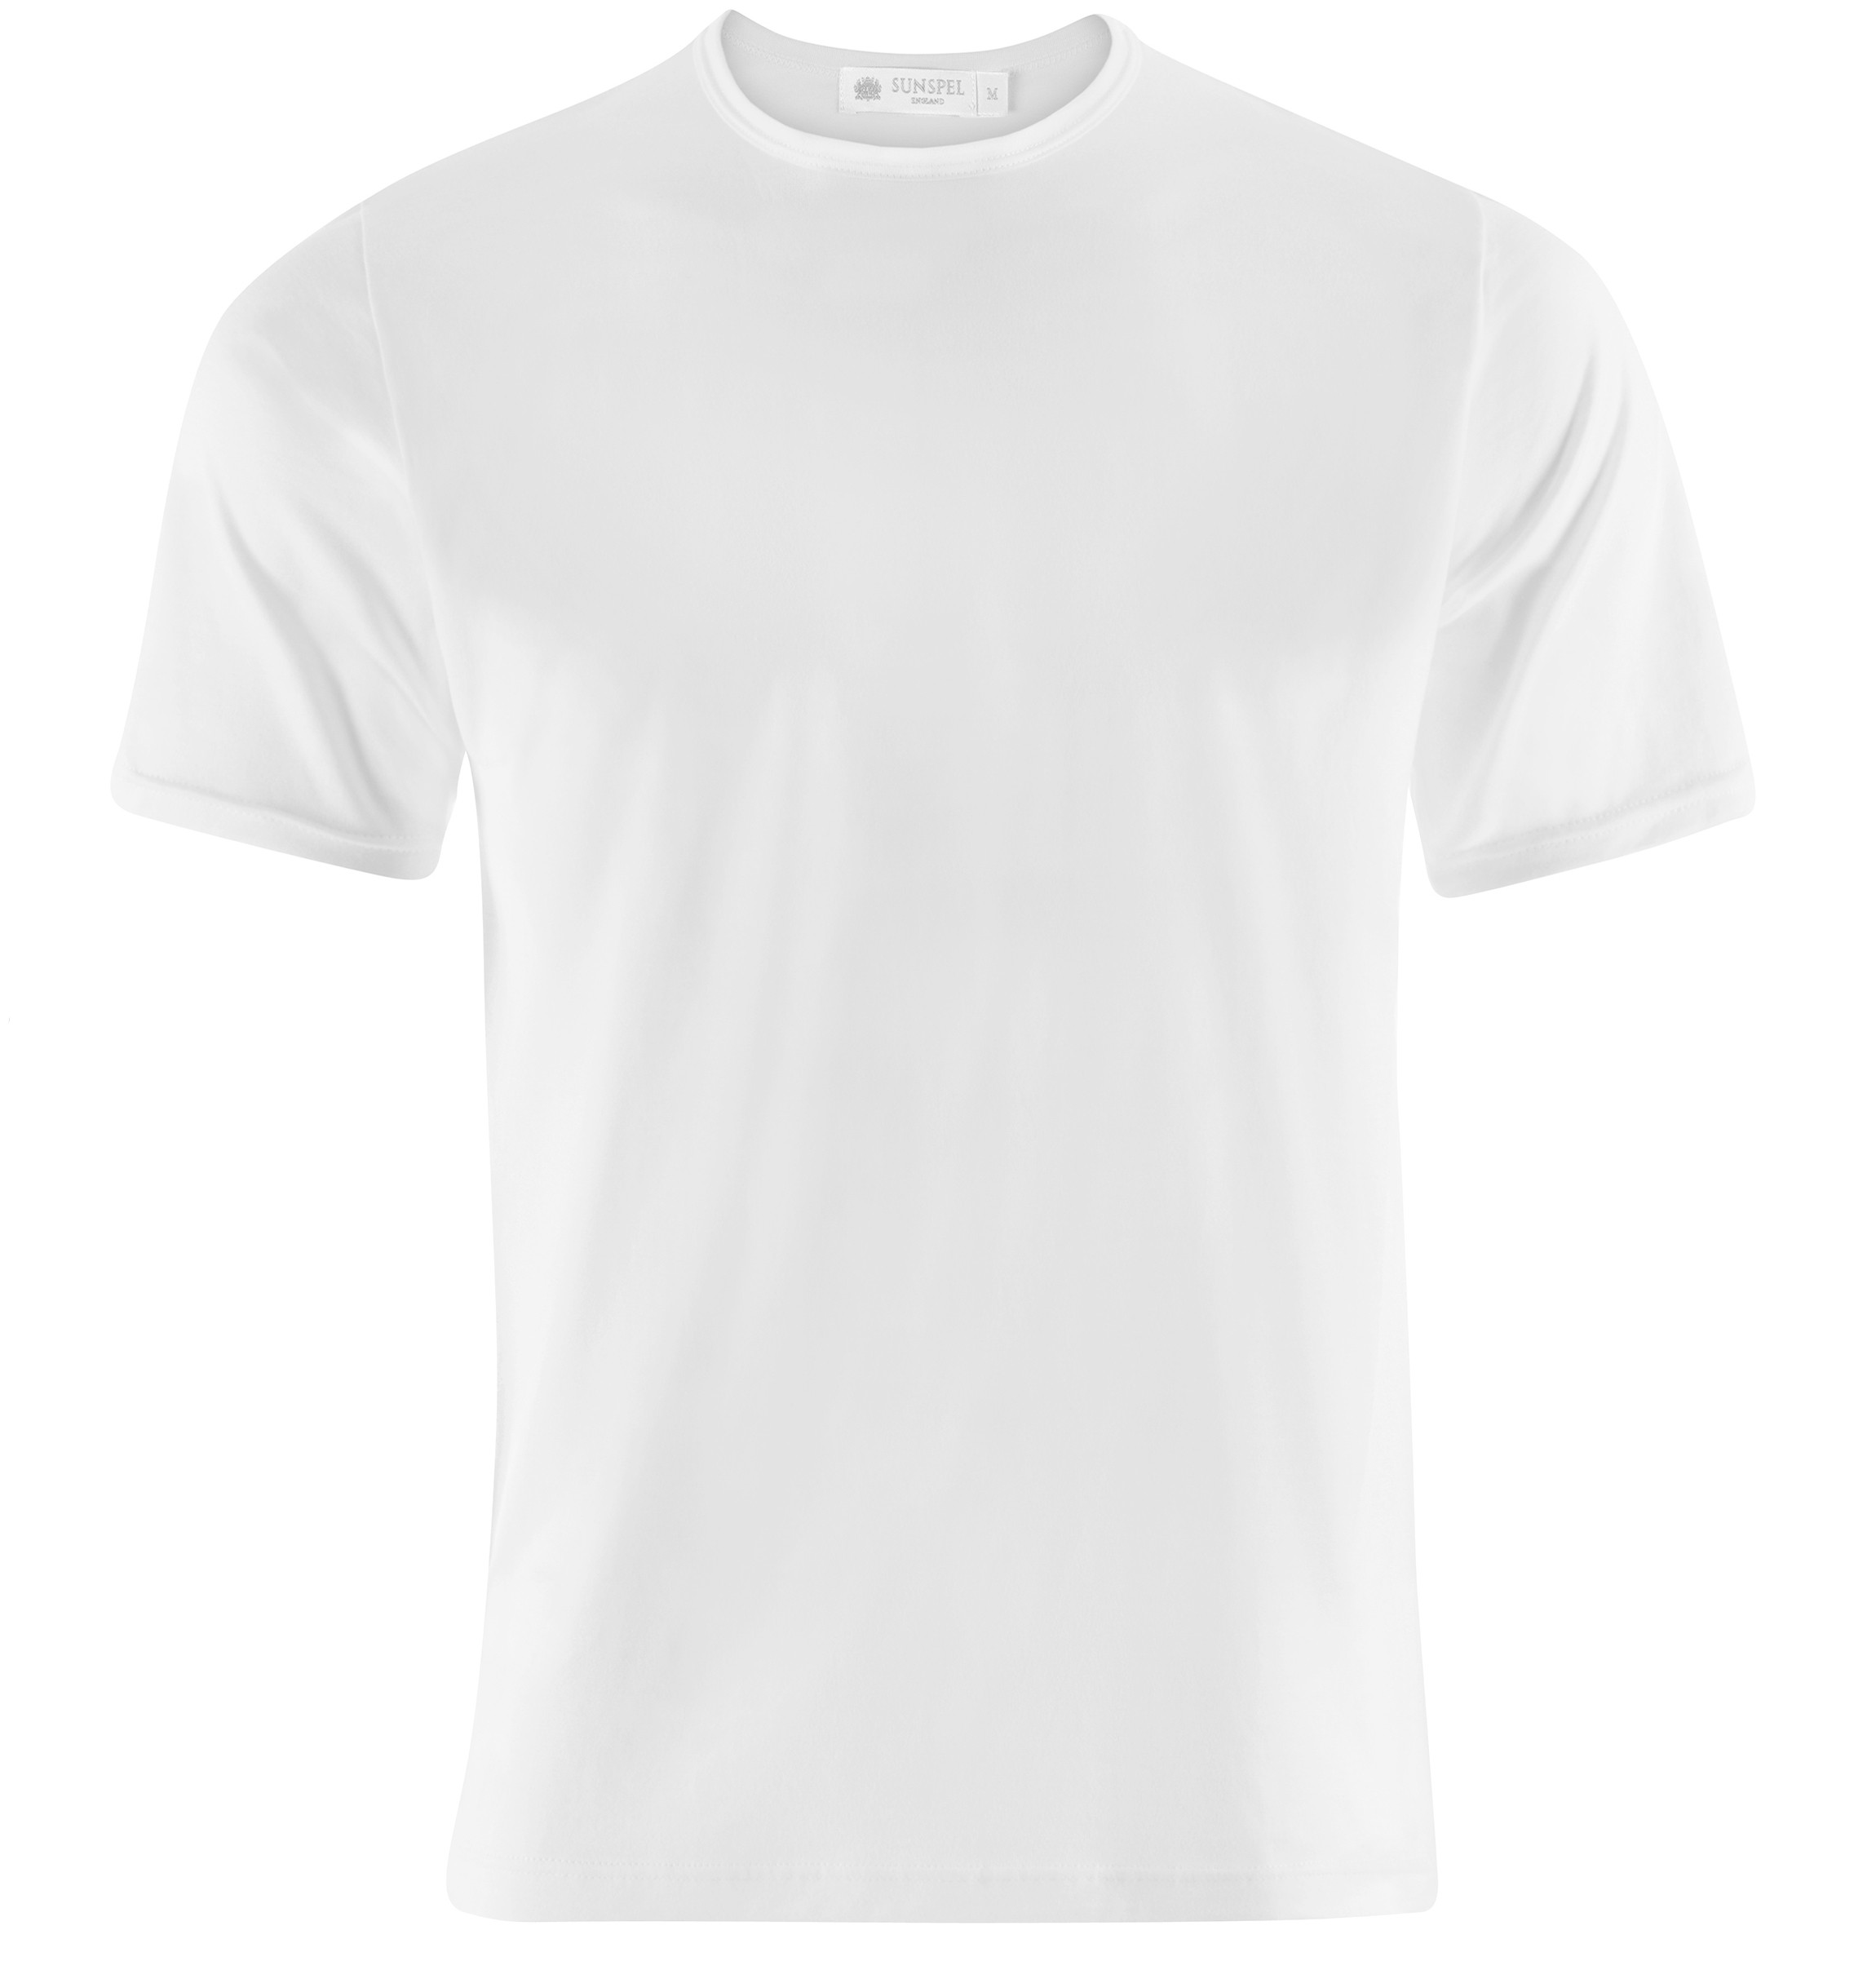 Sunspel superfine crew underwear t shirt in white for men for Tee shirts and more